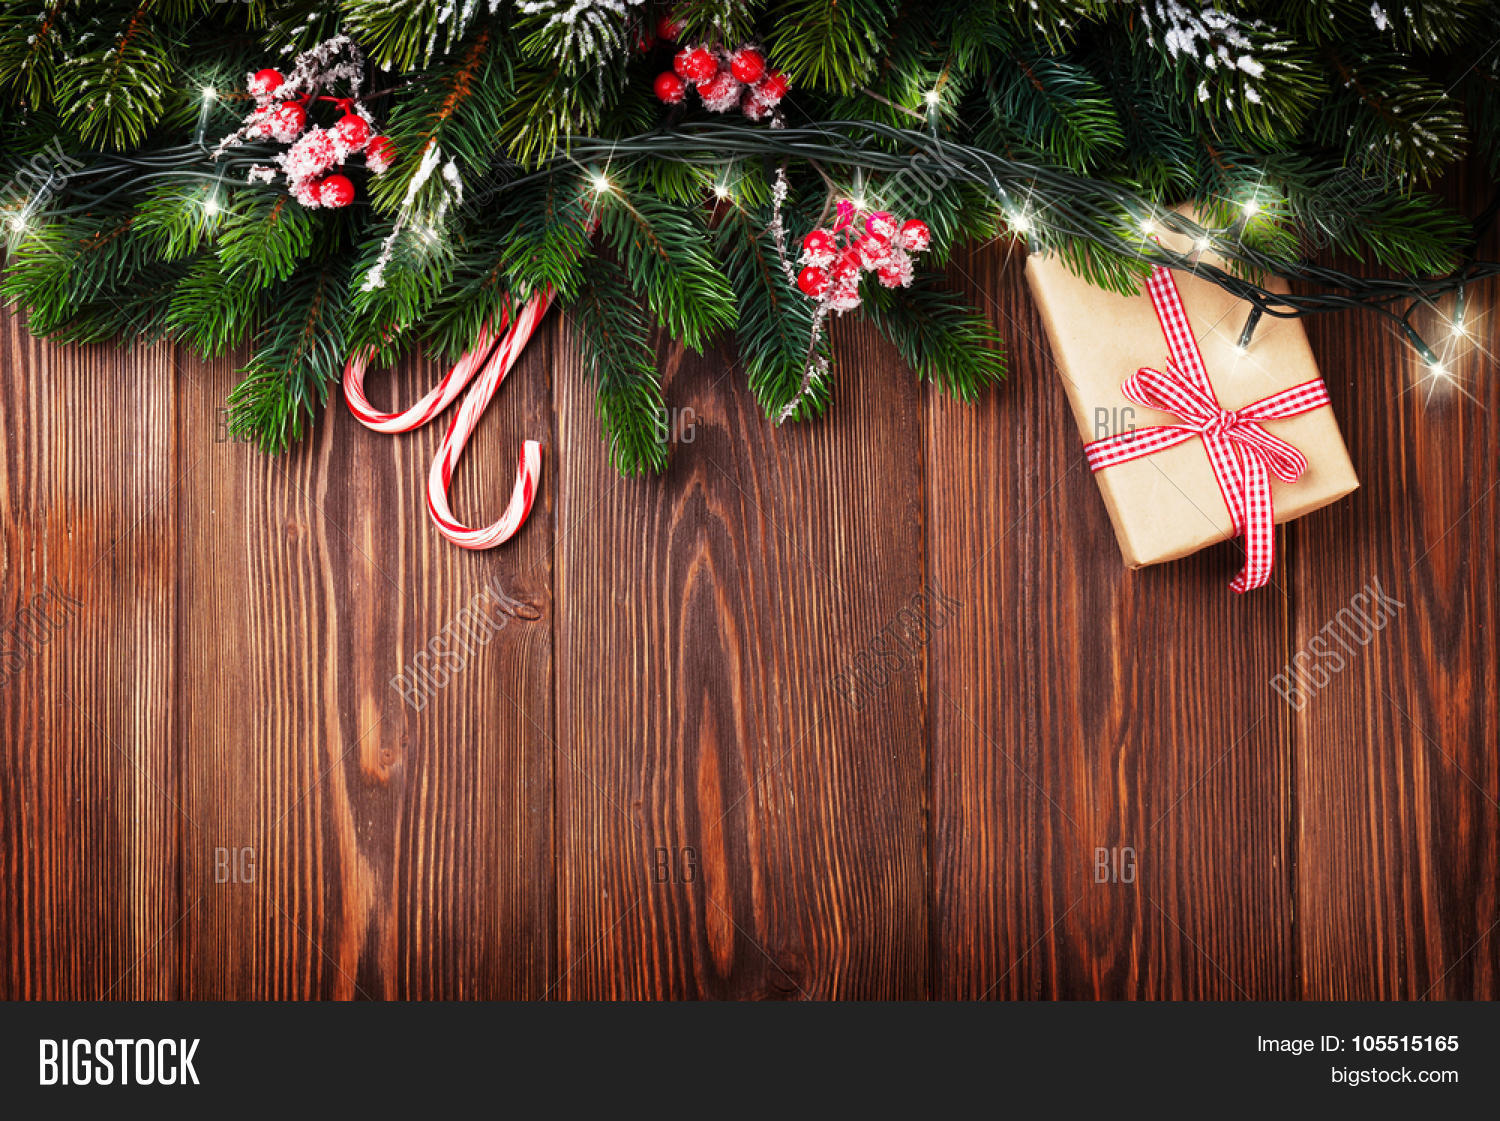 fir tree branch with christmas lights gift box and candy canes on wooden background with